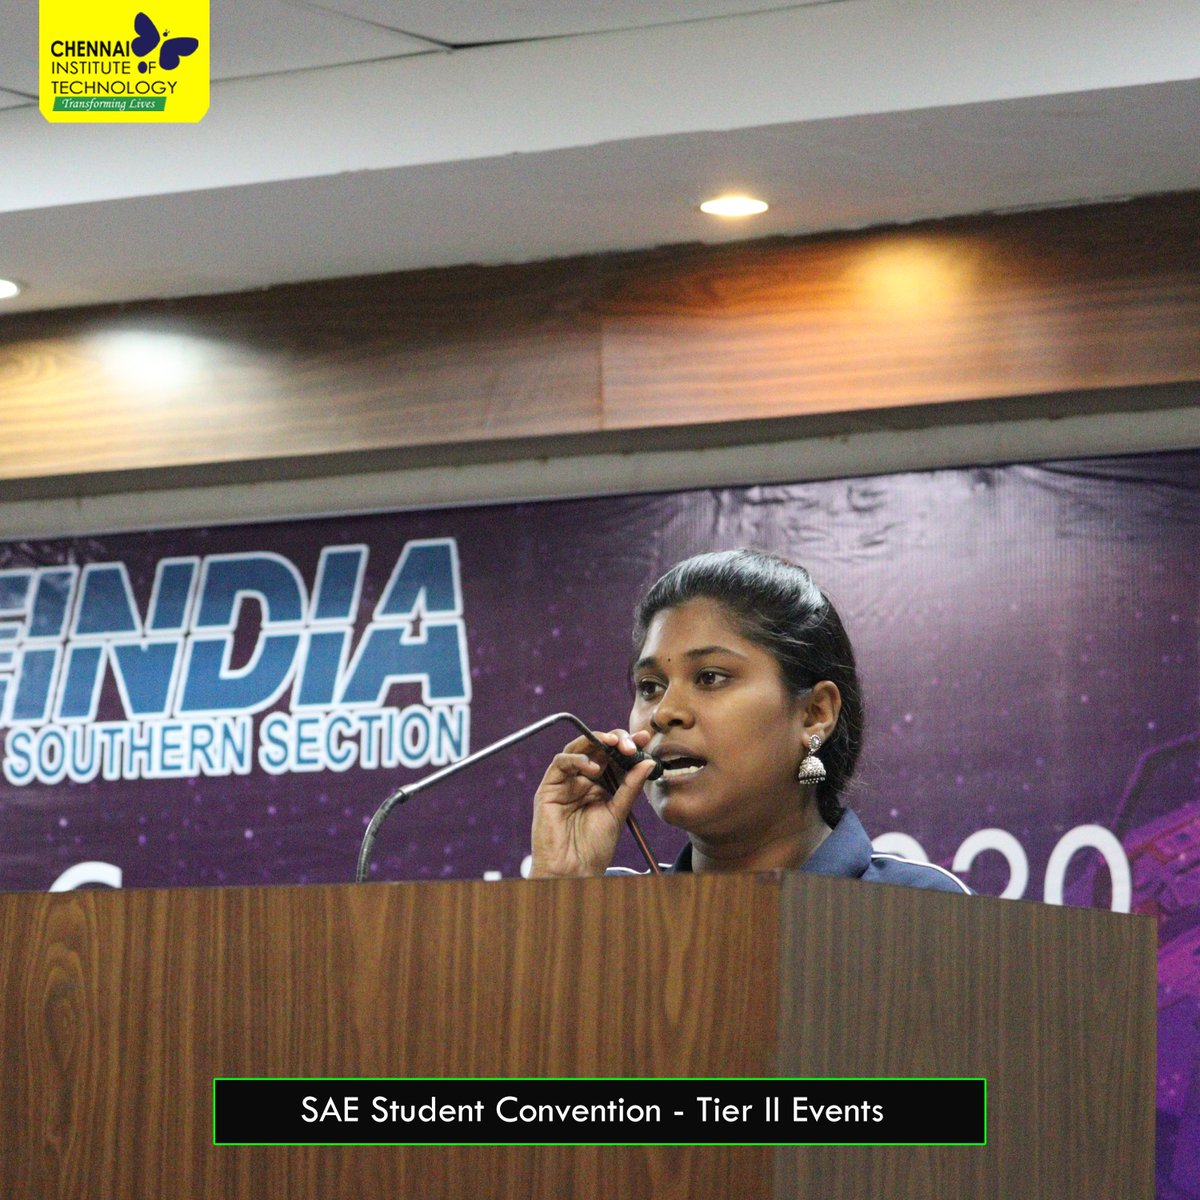 Inauguration of SAE India Southern Section - Tier II Student Convention 2020 at #ChennaiInstituteOfTechnology on 15th Feb, 2020 #SAE #SAEINDIA #StudentConventionpic.twitter.com/DL0sOTcE9Z